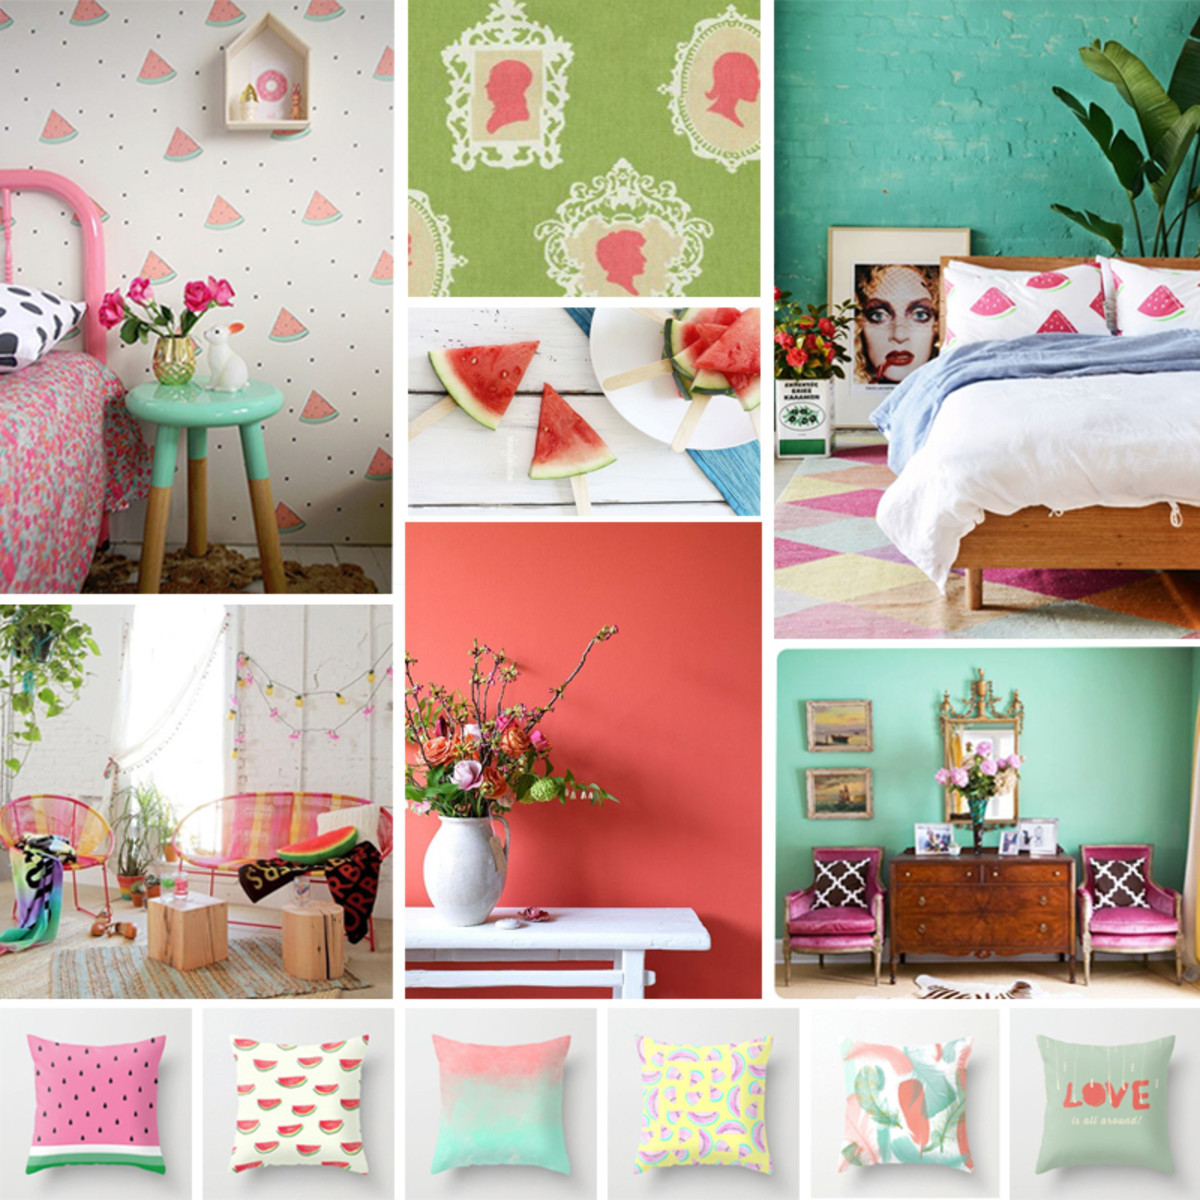 But you already know that, right? Watermelon is color so good! Color objects watermelon pink from other color palettes.